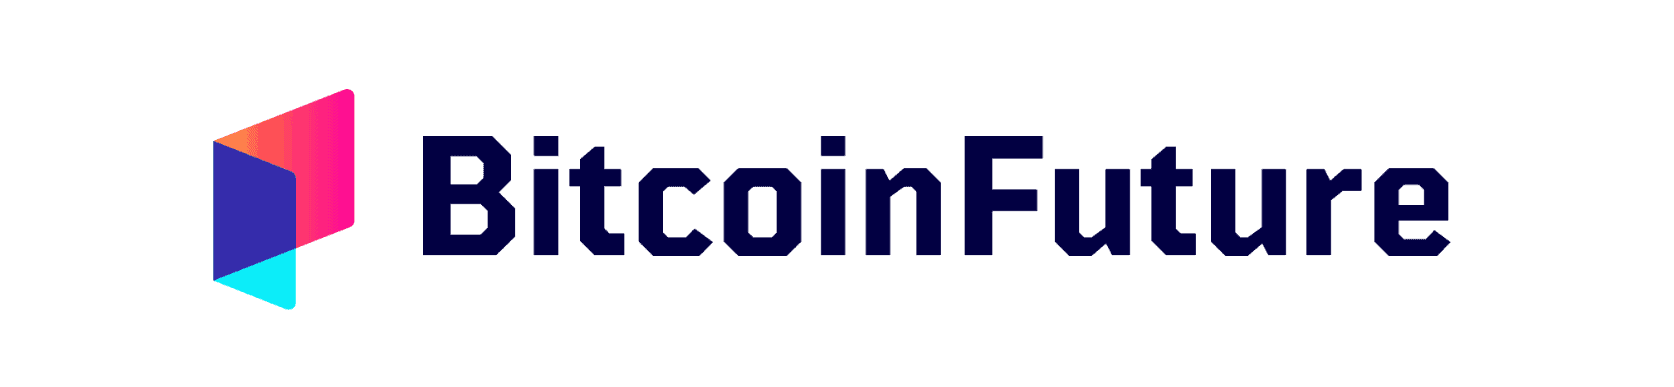 bitcoinfuture June 3, 2020